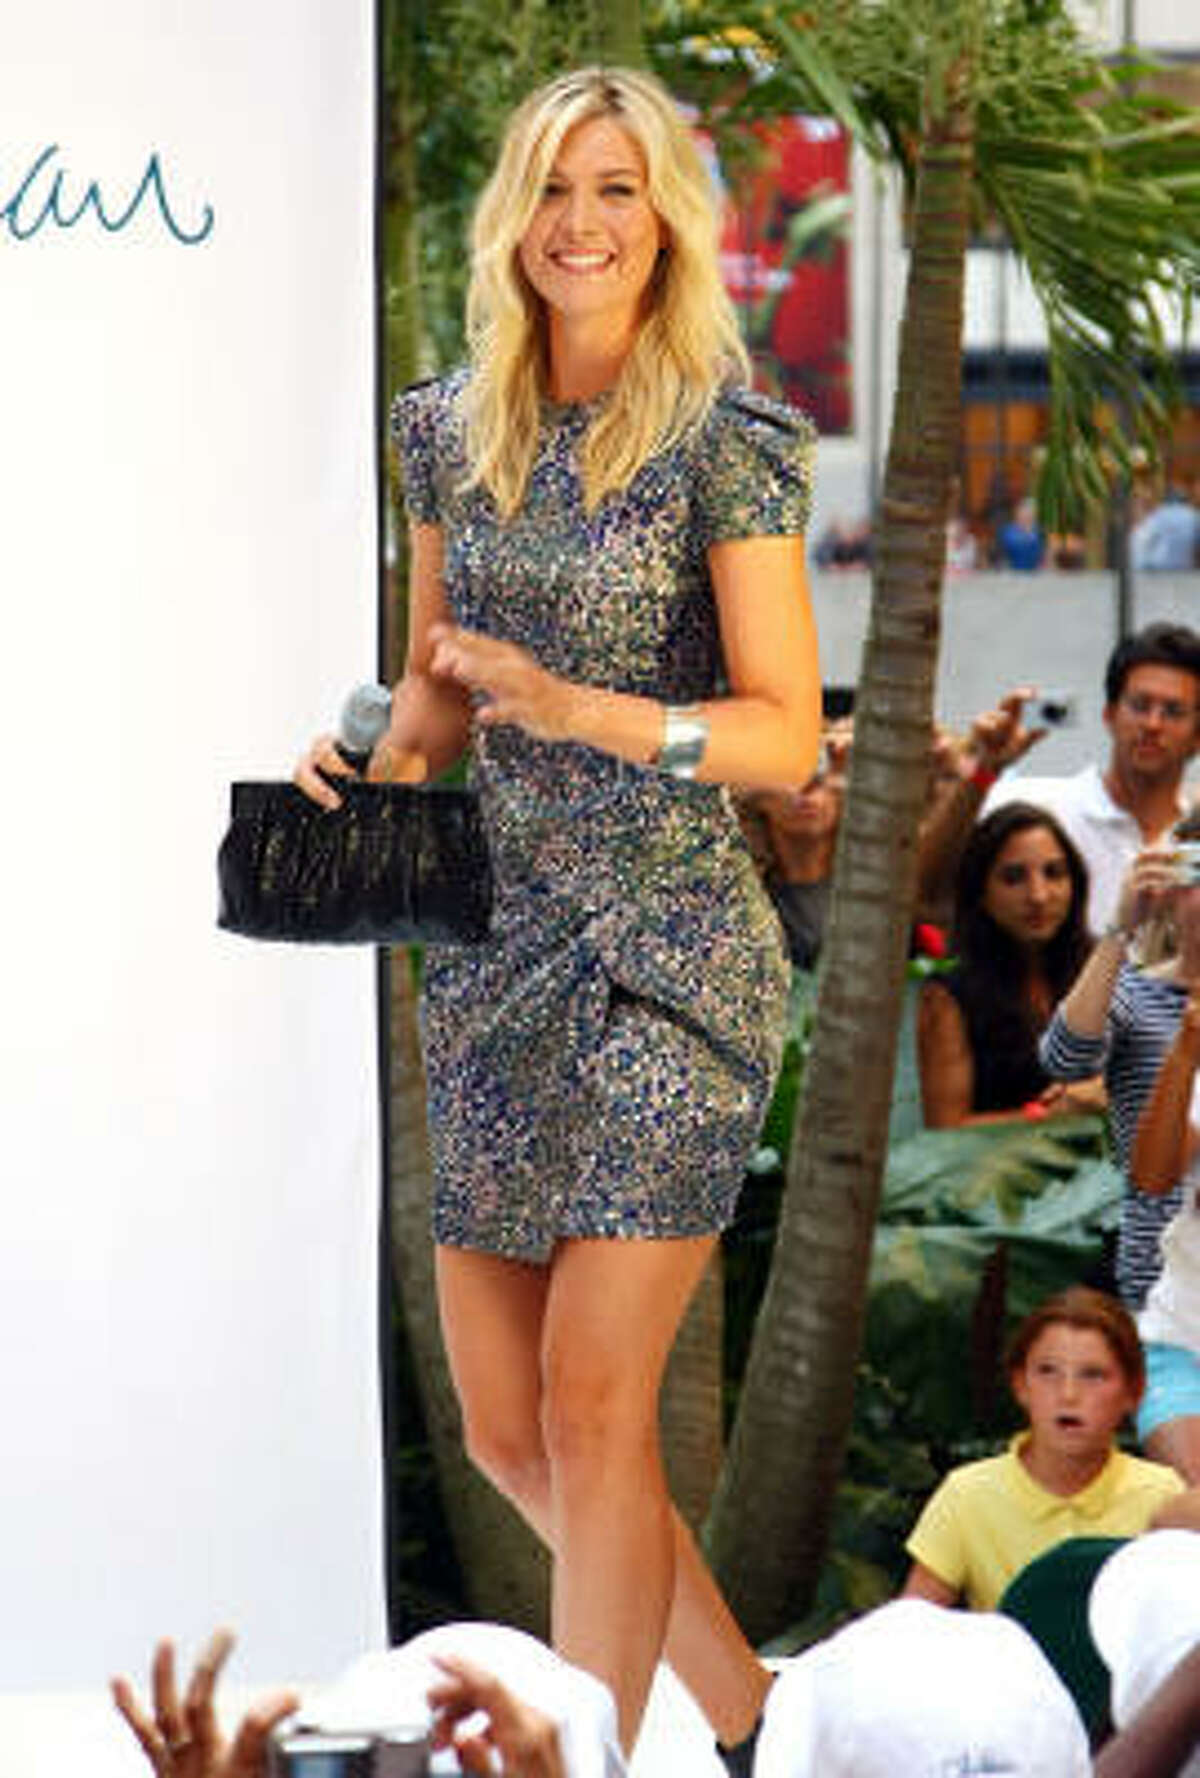 Tennis star Maria Sharapova attends the unveiling of her collection at Cole Haan Rockefeller Center Store on August 27 in New York. Read more about her collection.